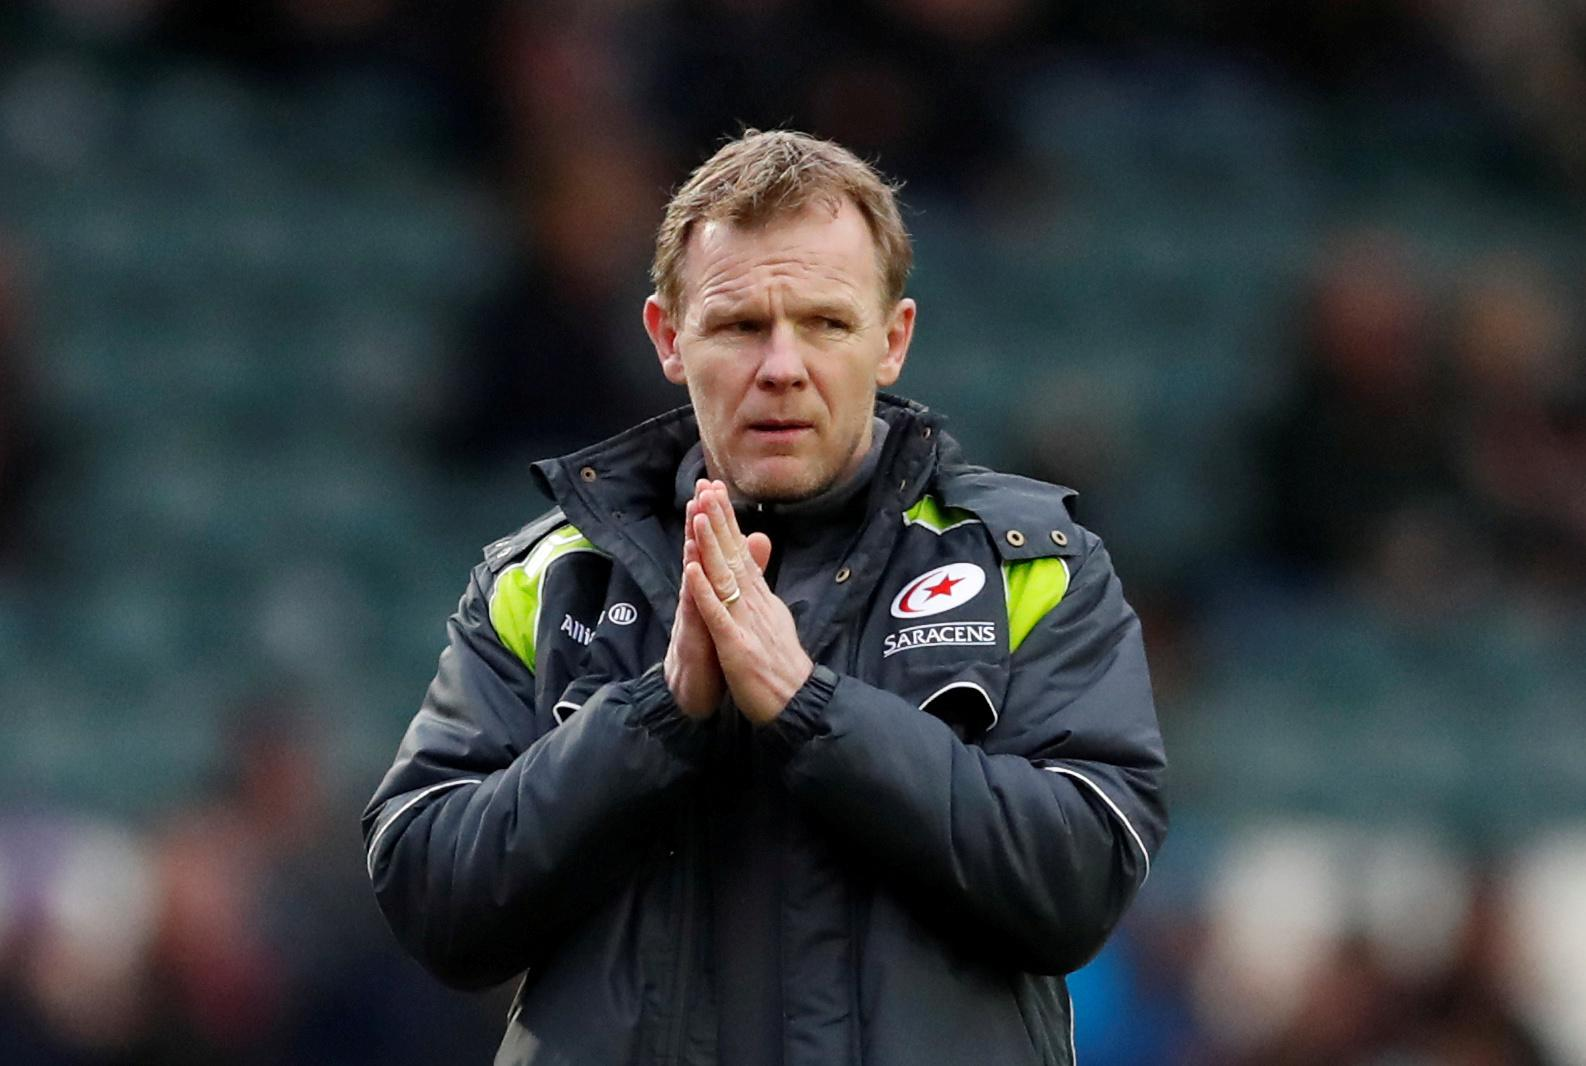 Saracens' points penalty will affect European title defence - McCall